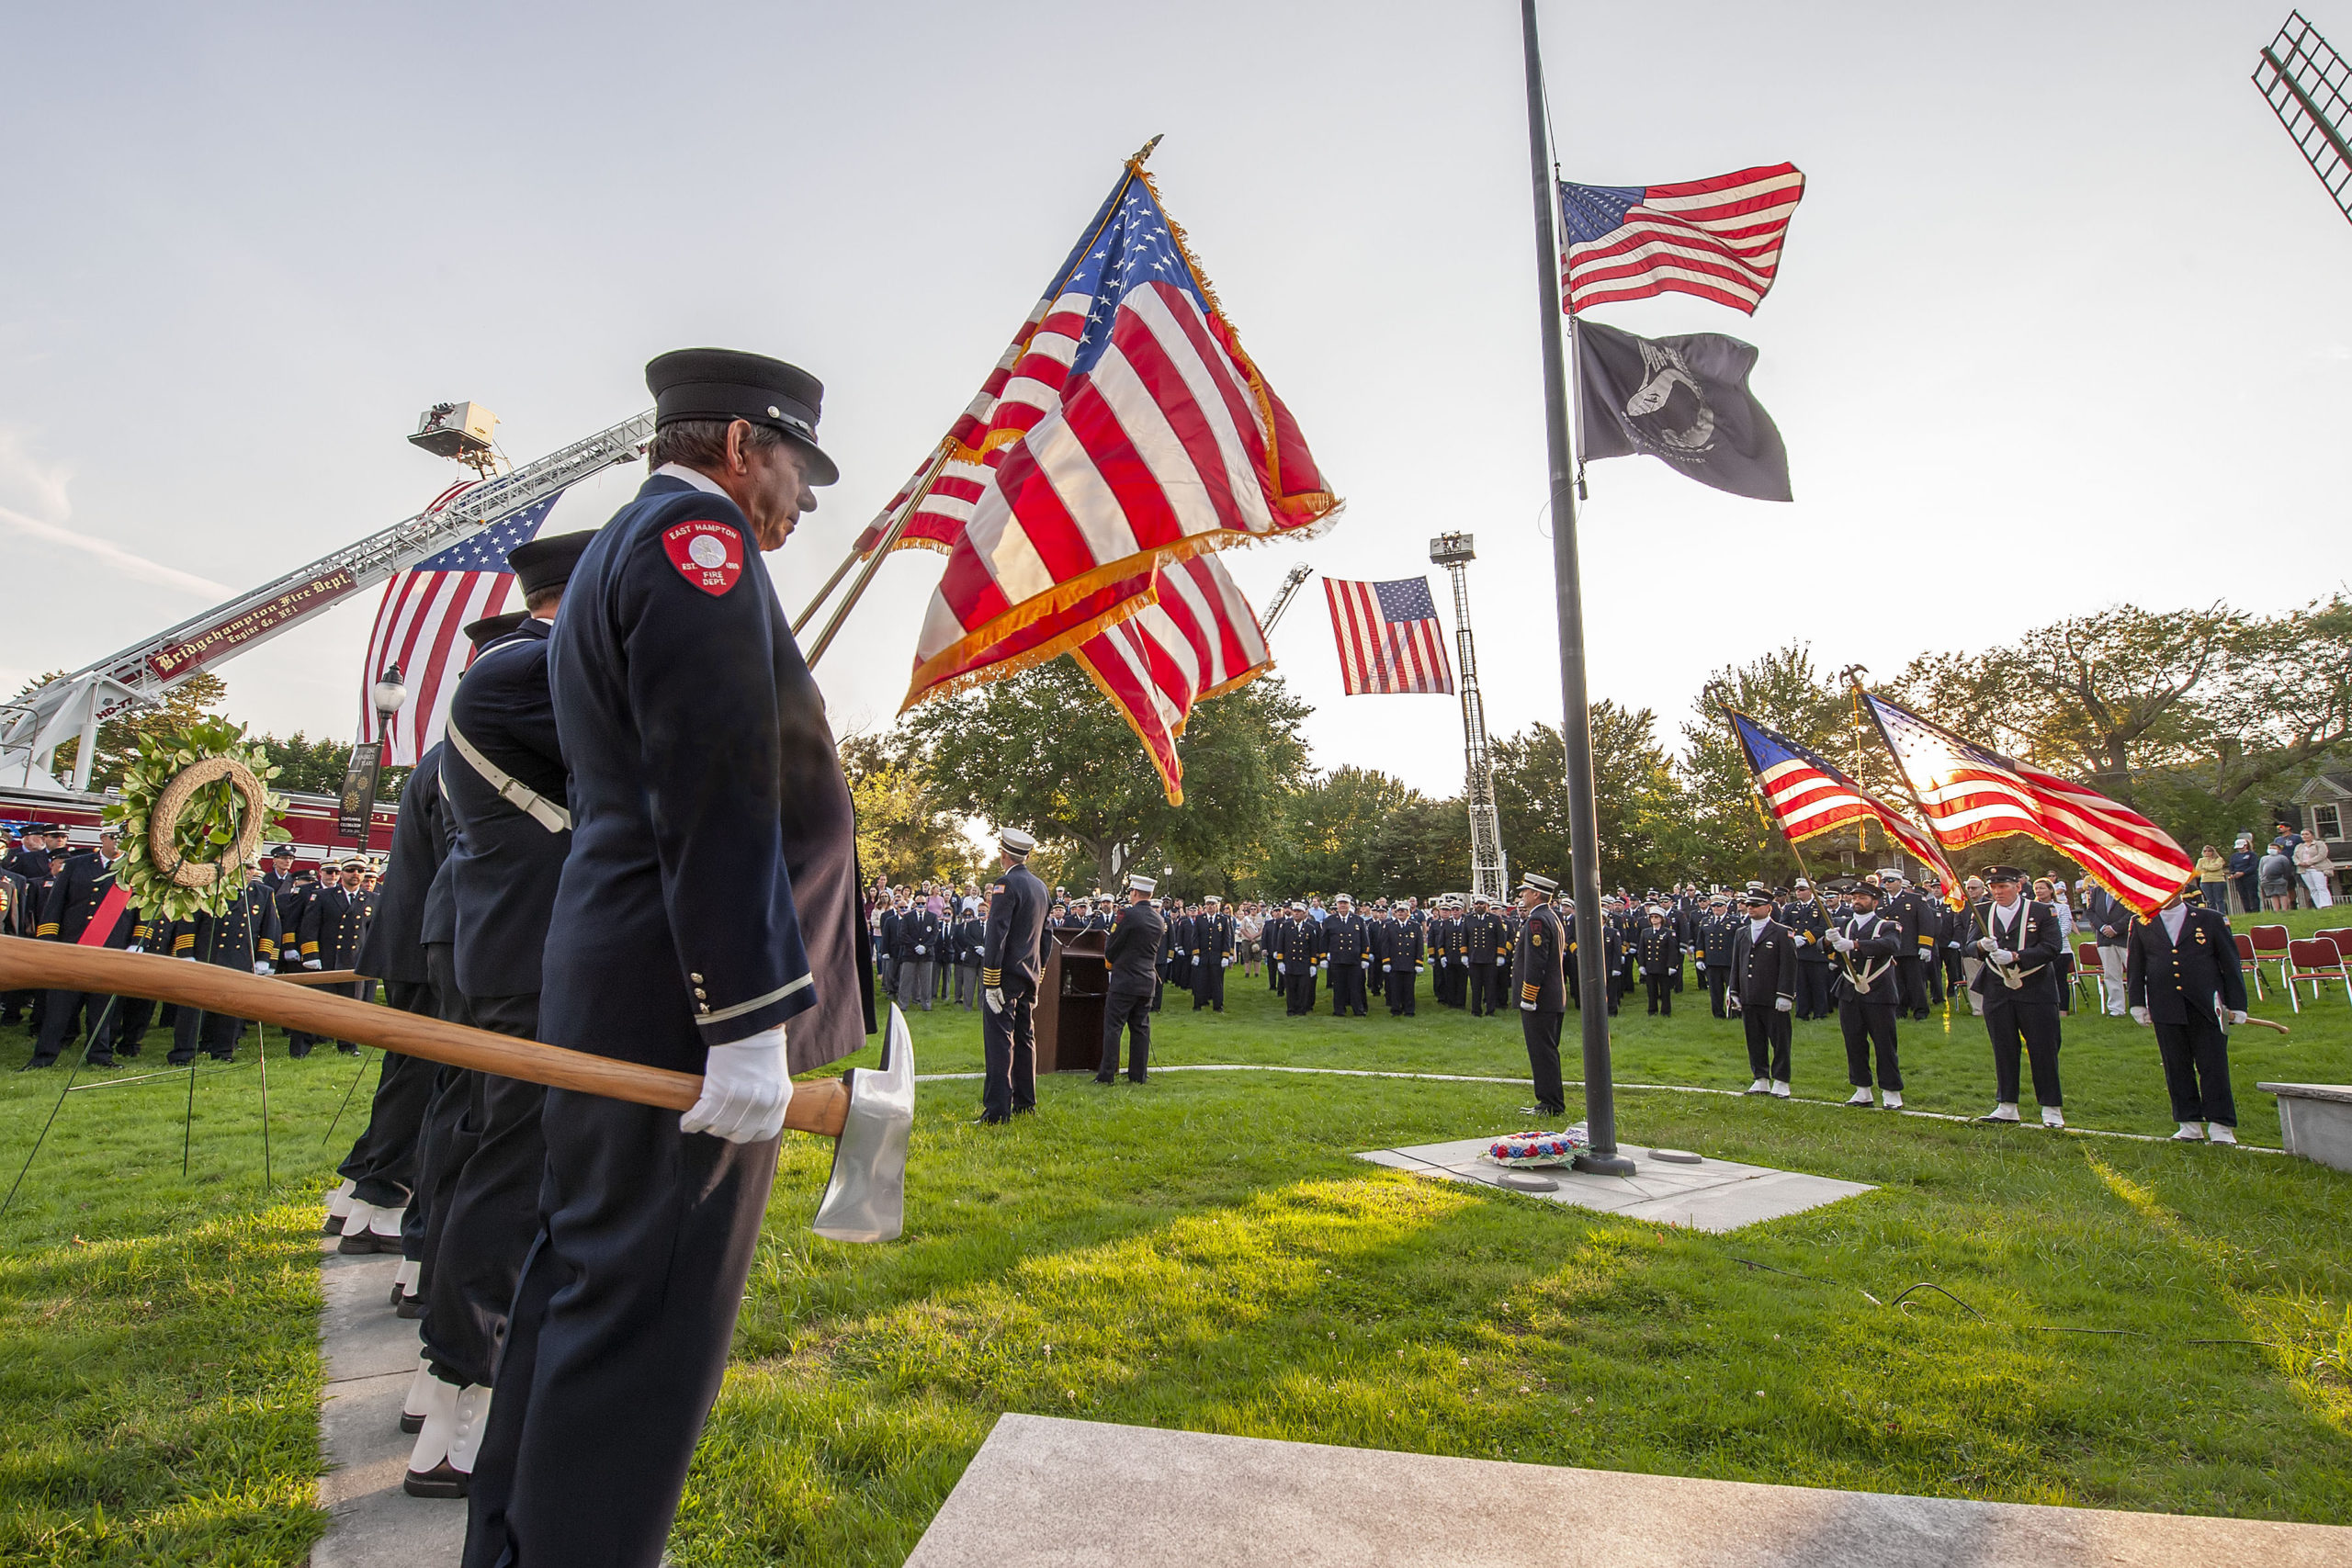 The ceremony commemorating the 20th anniversary of the attack on the World Trade Center, held on the Village Green in East Hampton and attended by 11 different East End fire, police and EMS agencies on Saturday afternoon.